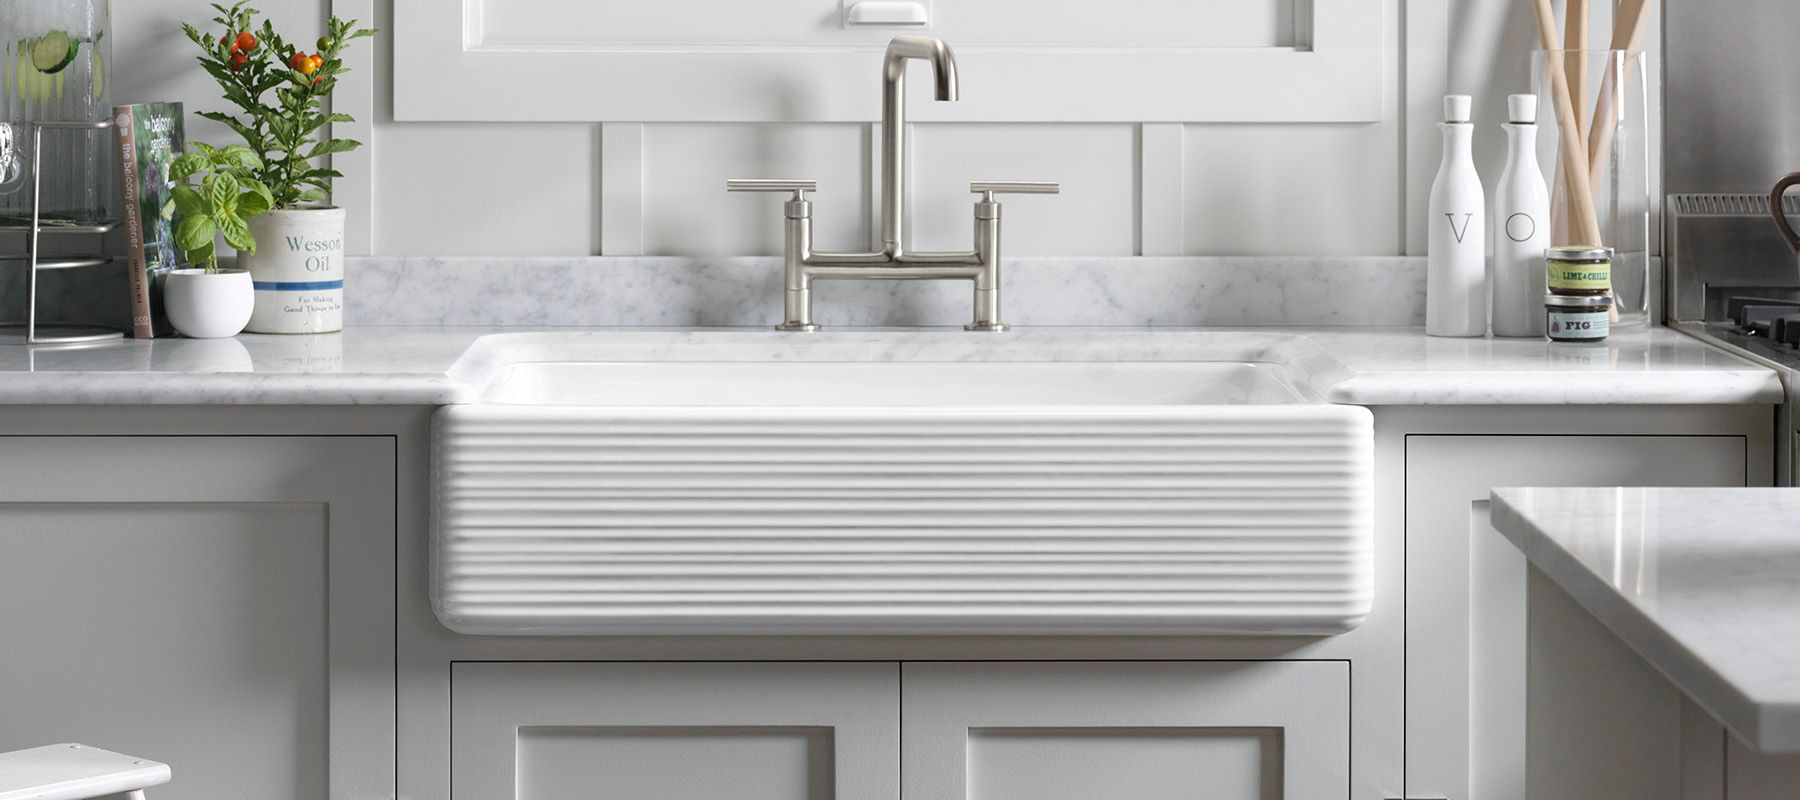 White Undermount Kitchen Sinks Beauteous Undermount Kitchen Sinks  Kitchen  Kohler Design Ideas